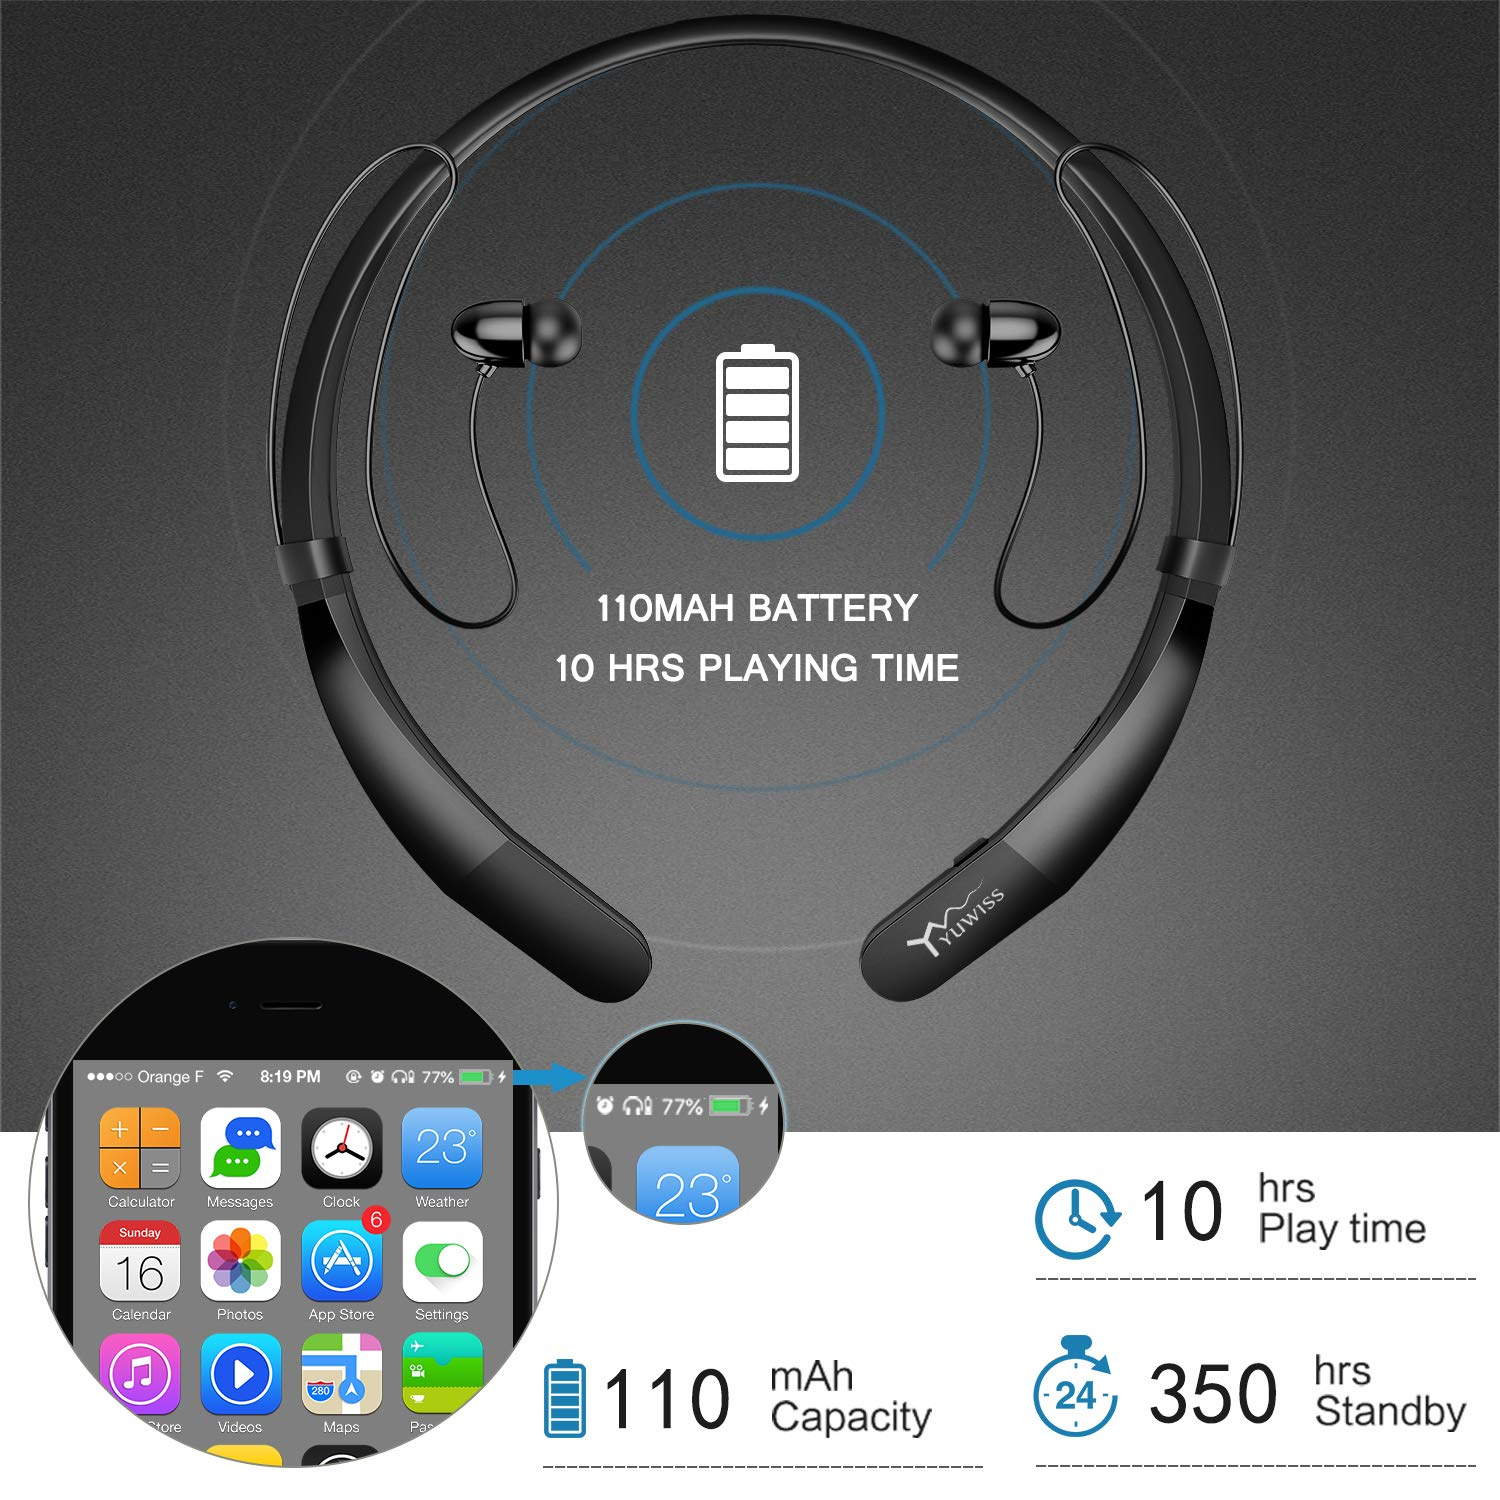 Yuwiss Bluetooth Headphones Neckband V4.2 Lightweight Wireless Headset Call Vibrate Alert Sport Earbuds w/Mic Earphones 10-Hour Playtime for Gym Running Compatible with iPhone Samsung Android (Black) by YW YUWISS (Image #4)